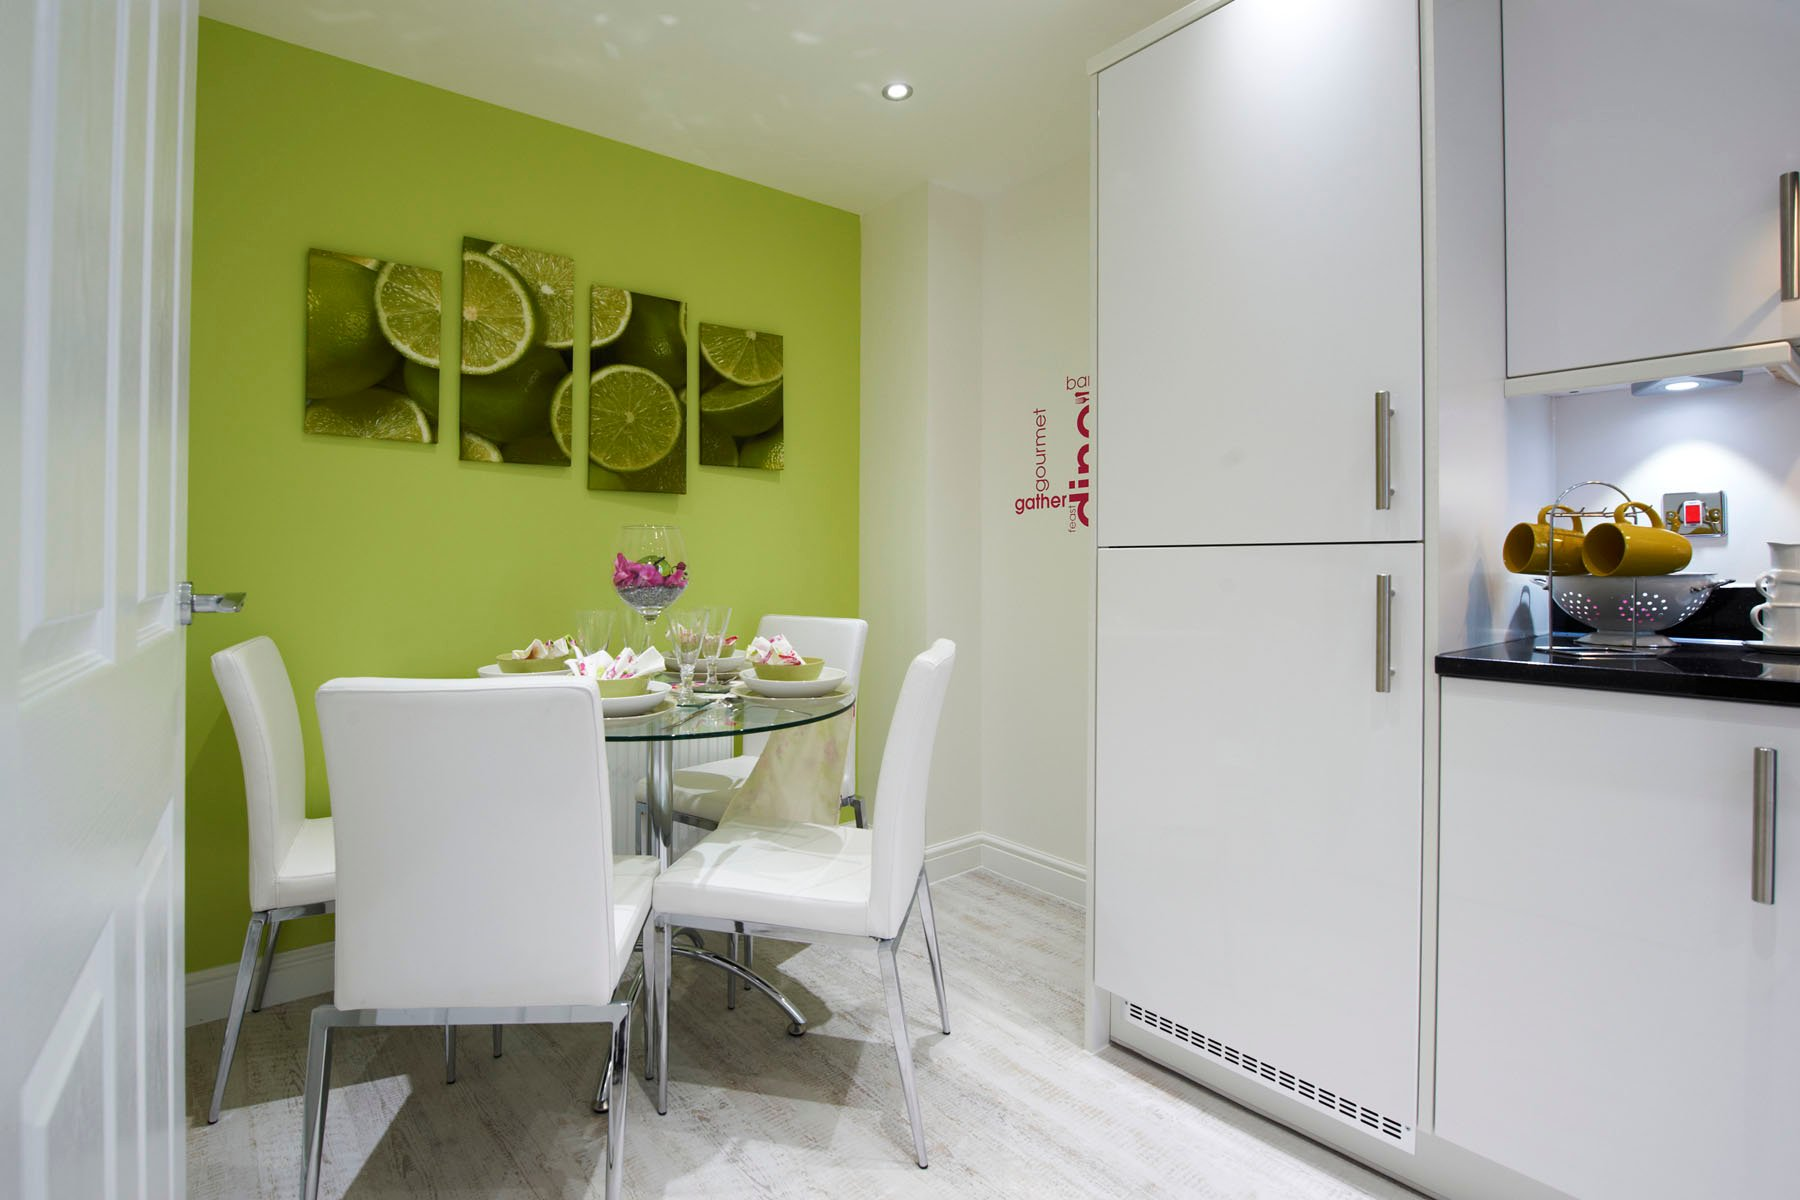 A typical Taylor Wimpey breakfast/dining area